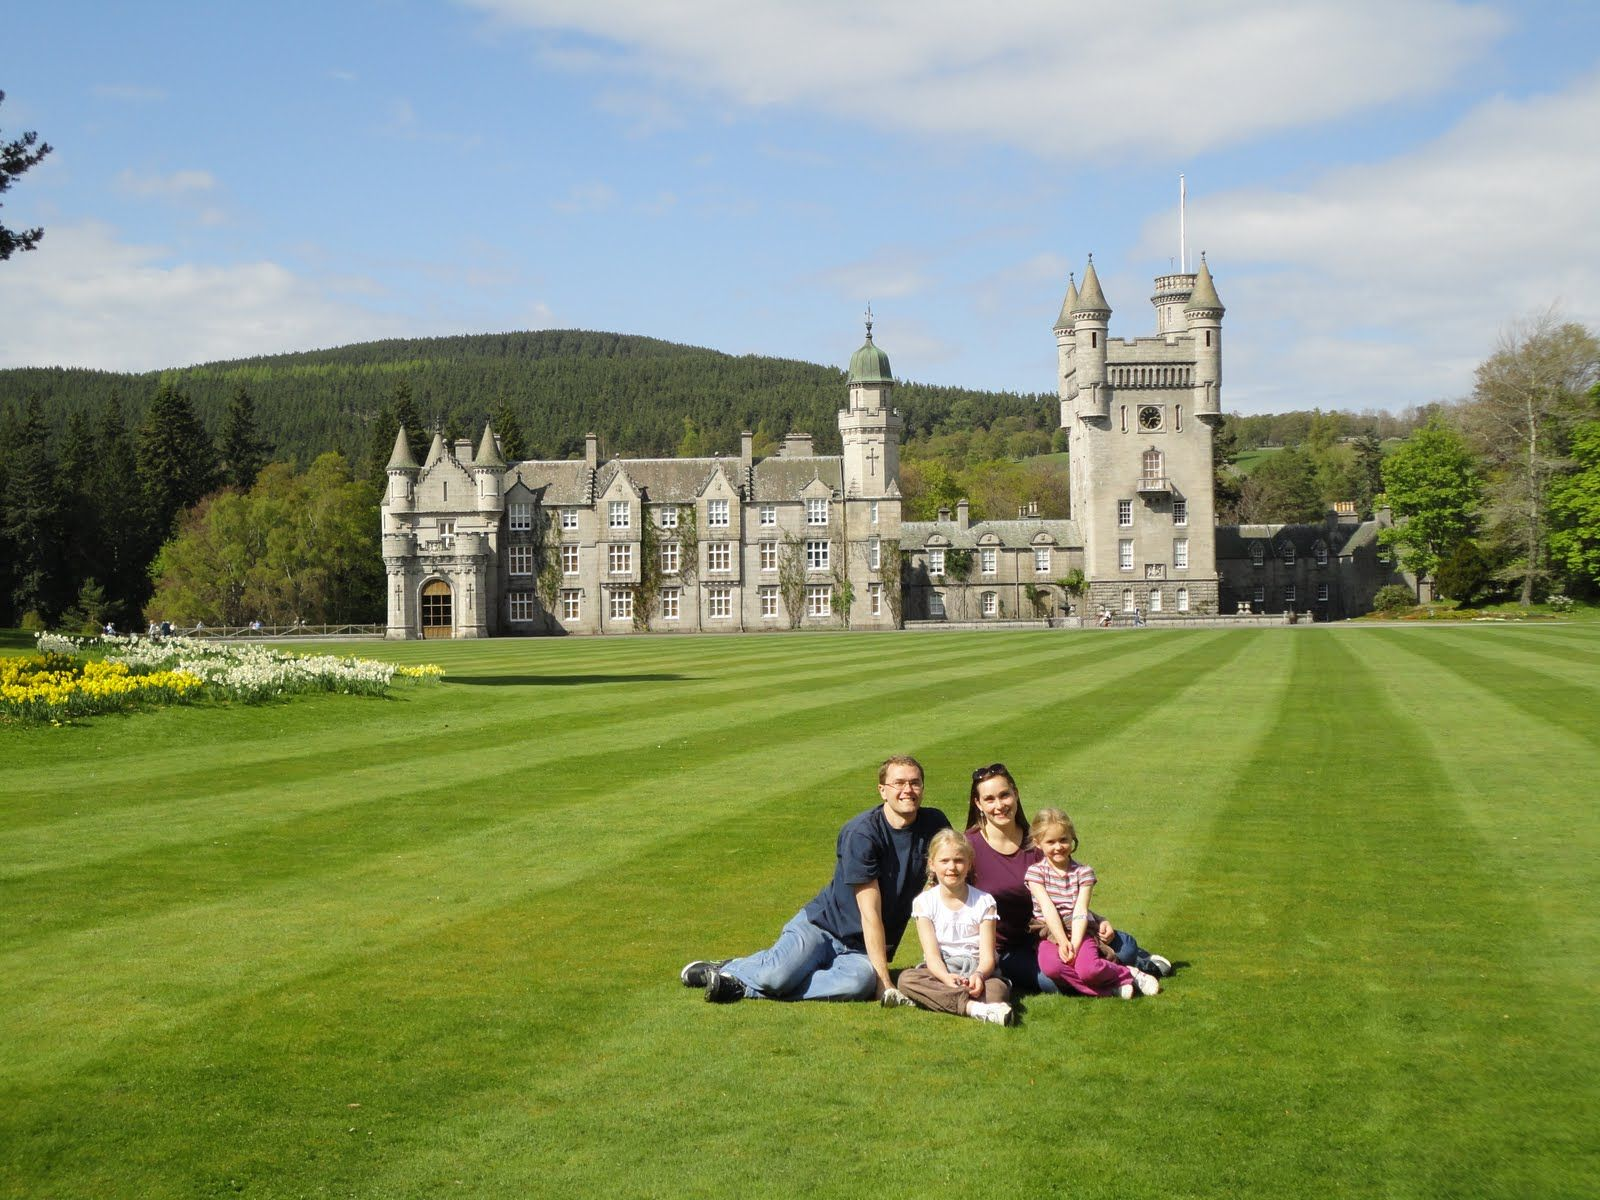 Balmoral Castle Scotland Photos Balmoral Is The Royal